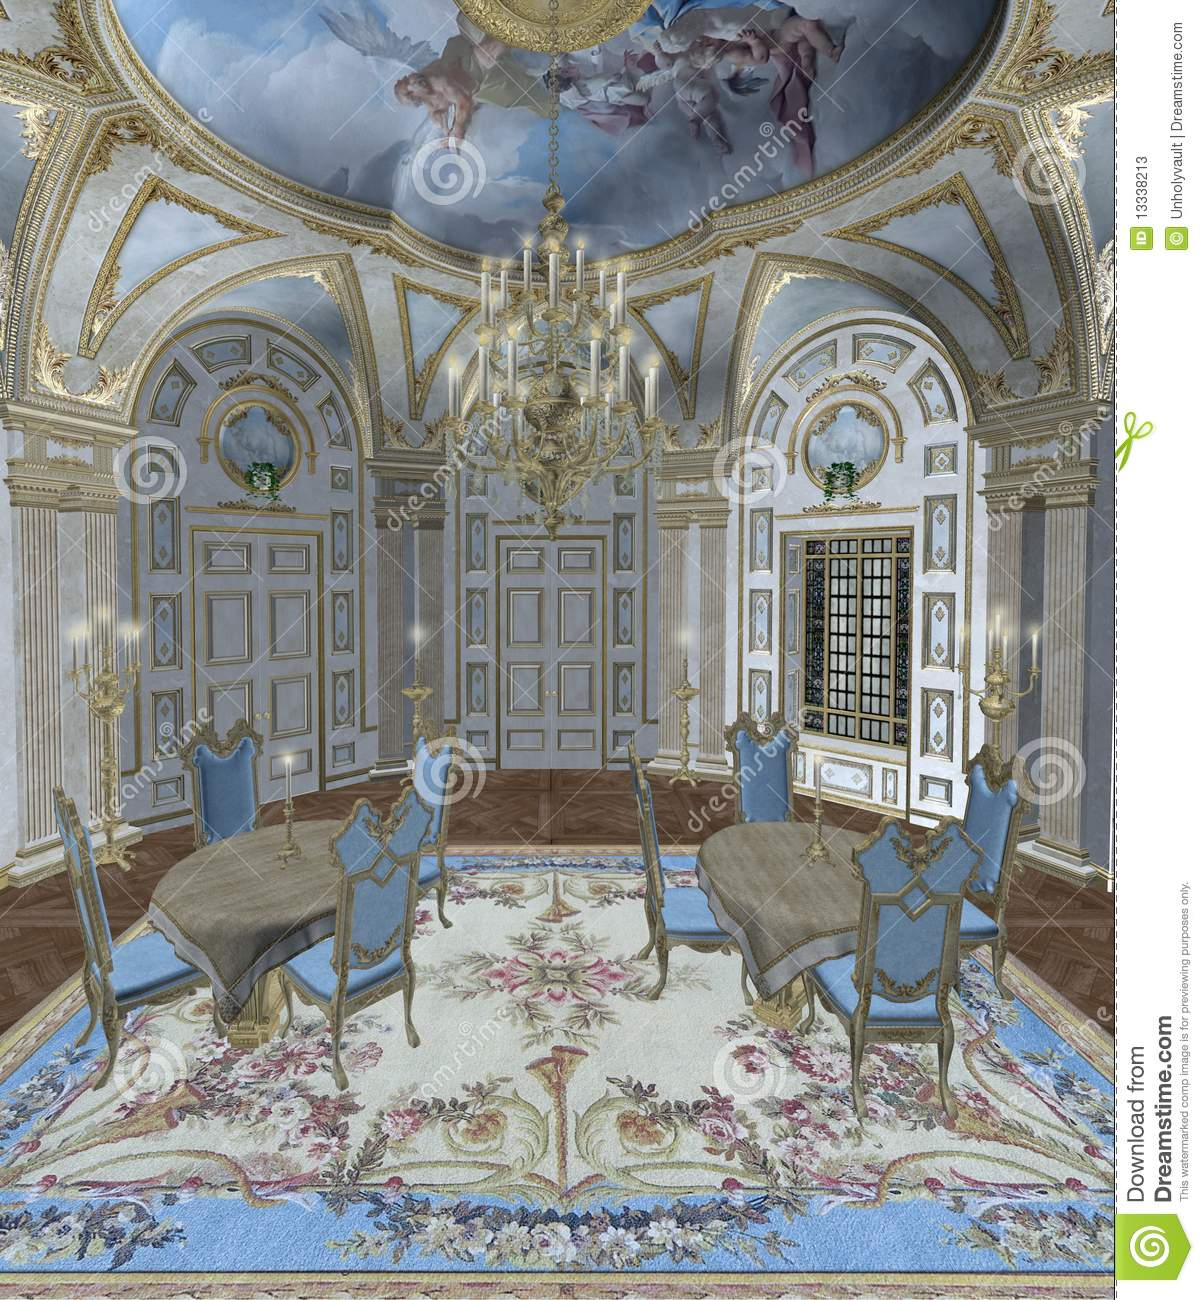 baroque room 1 stock illustration image of window fantasy 13338213. Black Bedroom Furniture Sets. Home Design Ideas